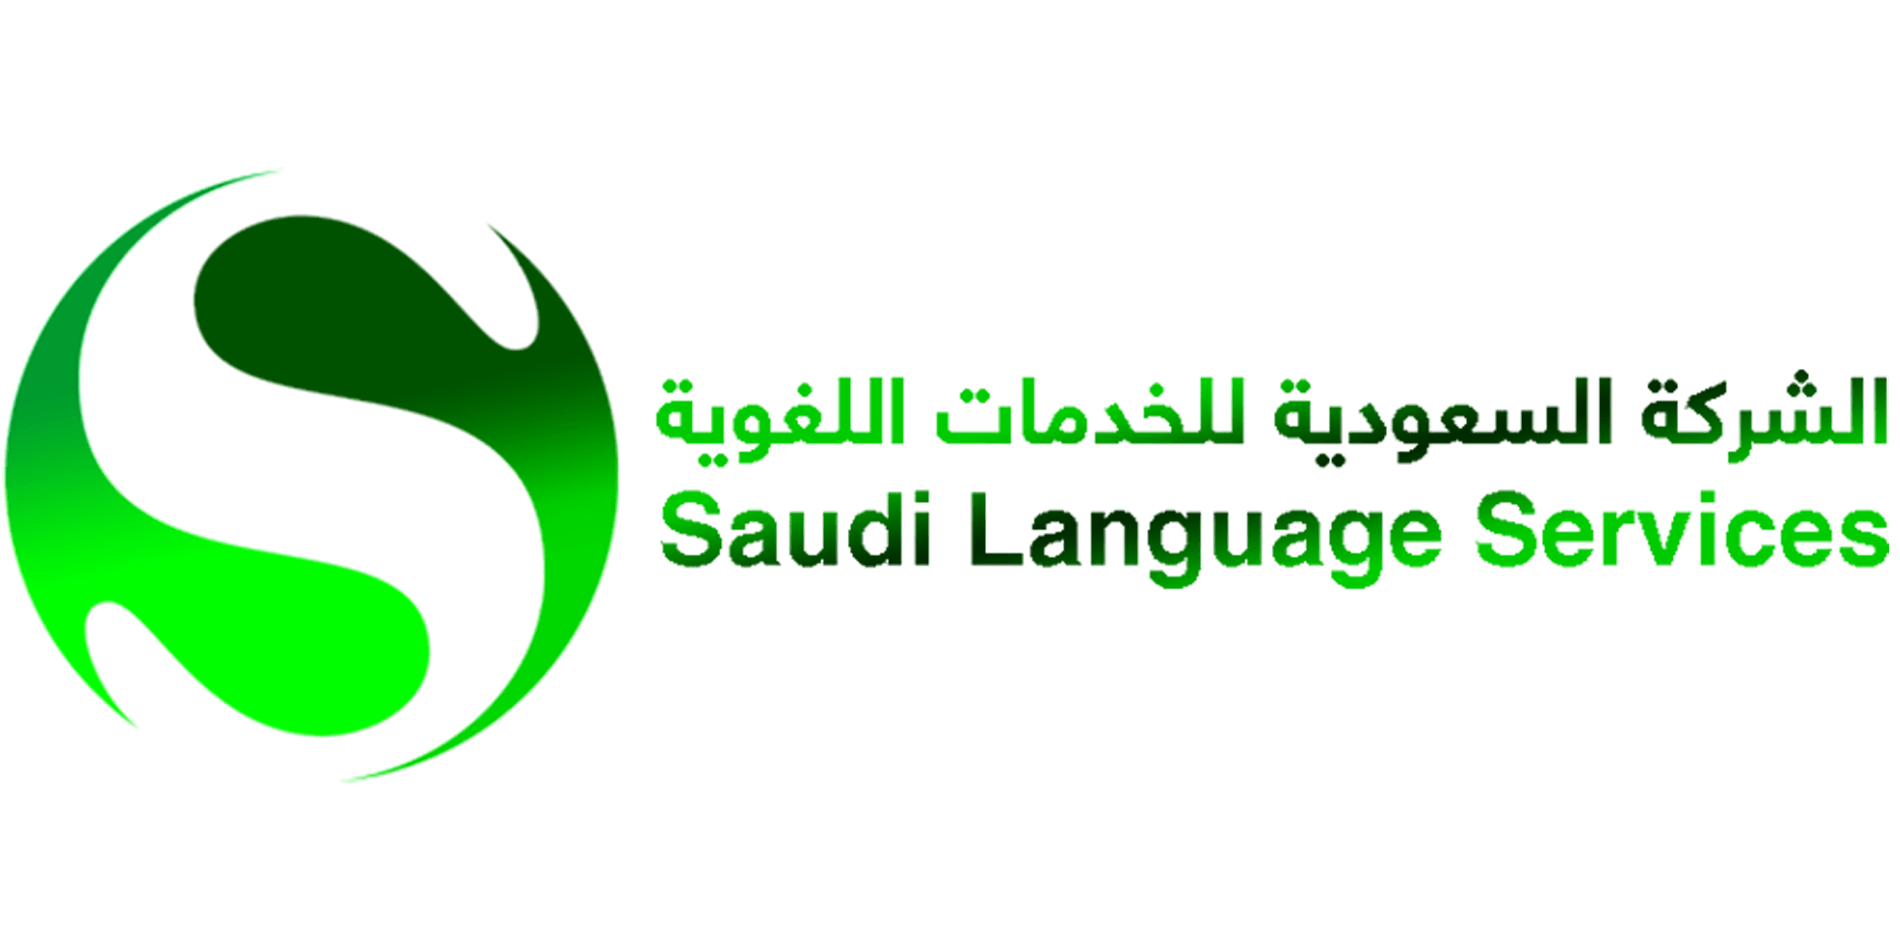 Saudi Language Services